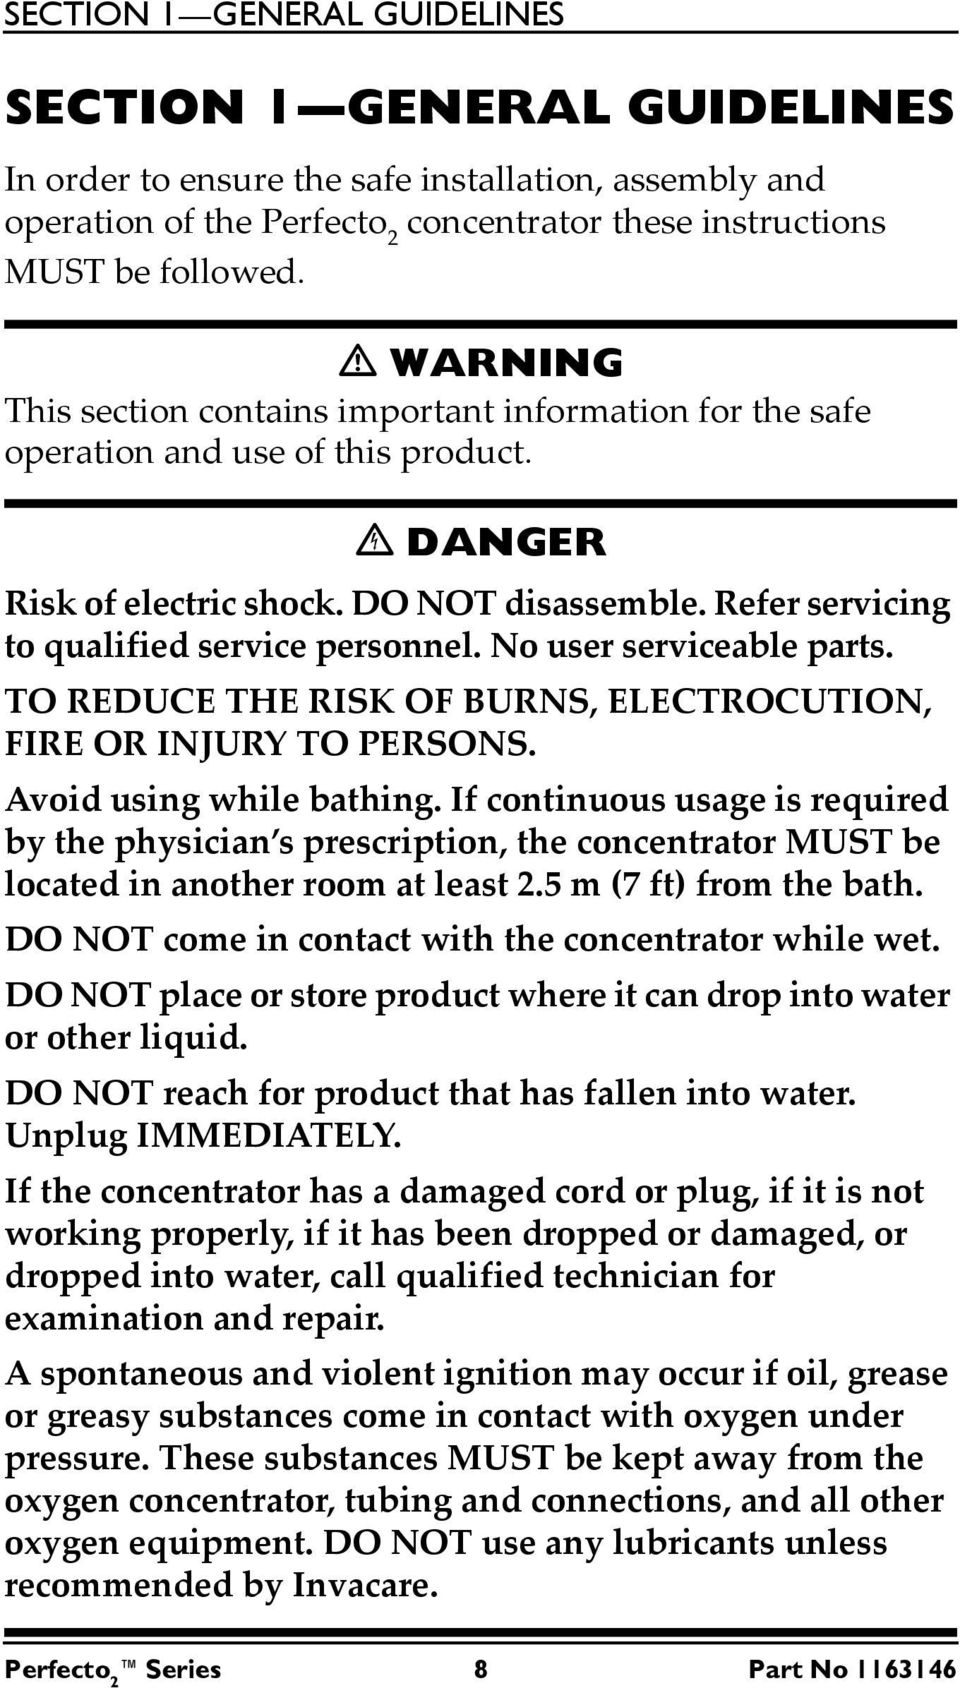 No user serviceable parts. TO REDUCE THE RISK OF BURNS, ELECTROCUTION, FIRE OR INJURY TO PERSONS. Avoid using while bathing.